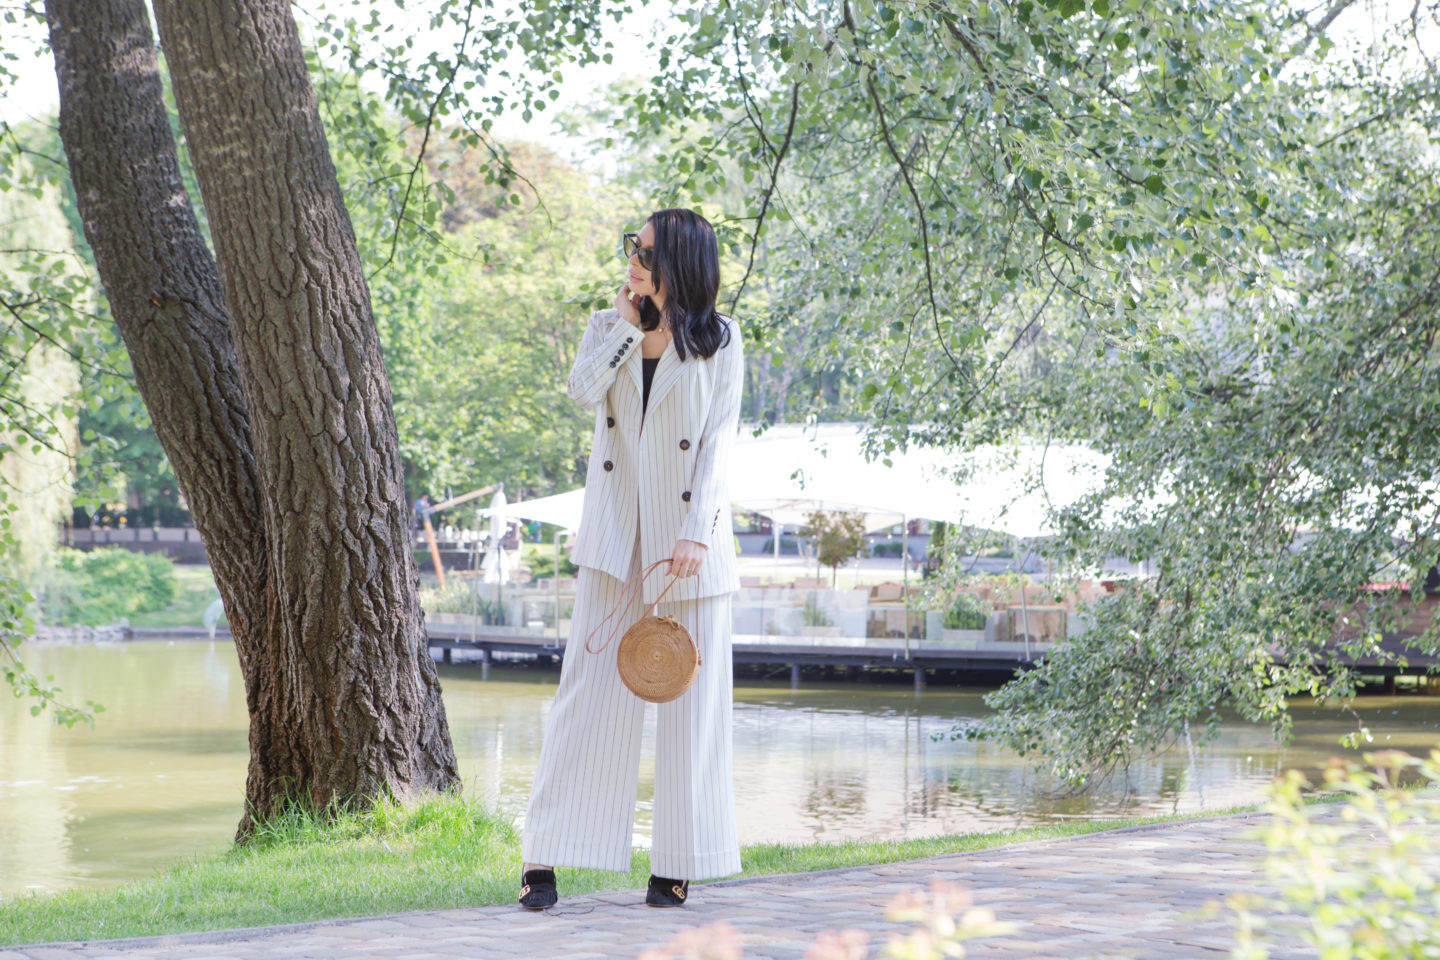 Stripes suit for summer – Ретро образ